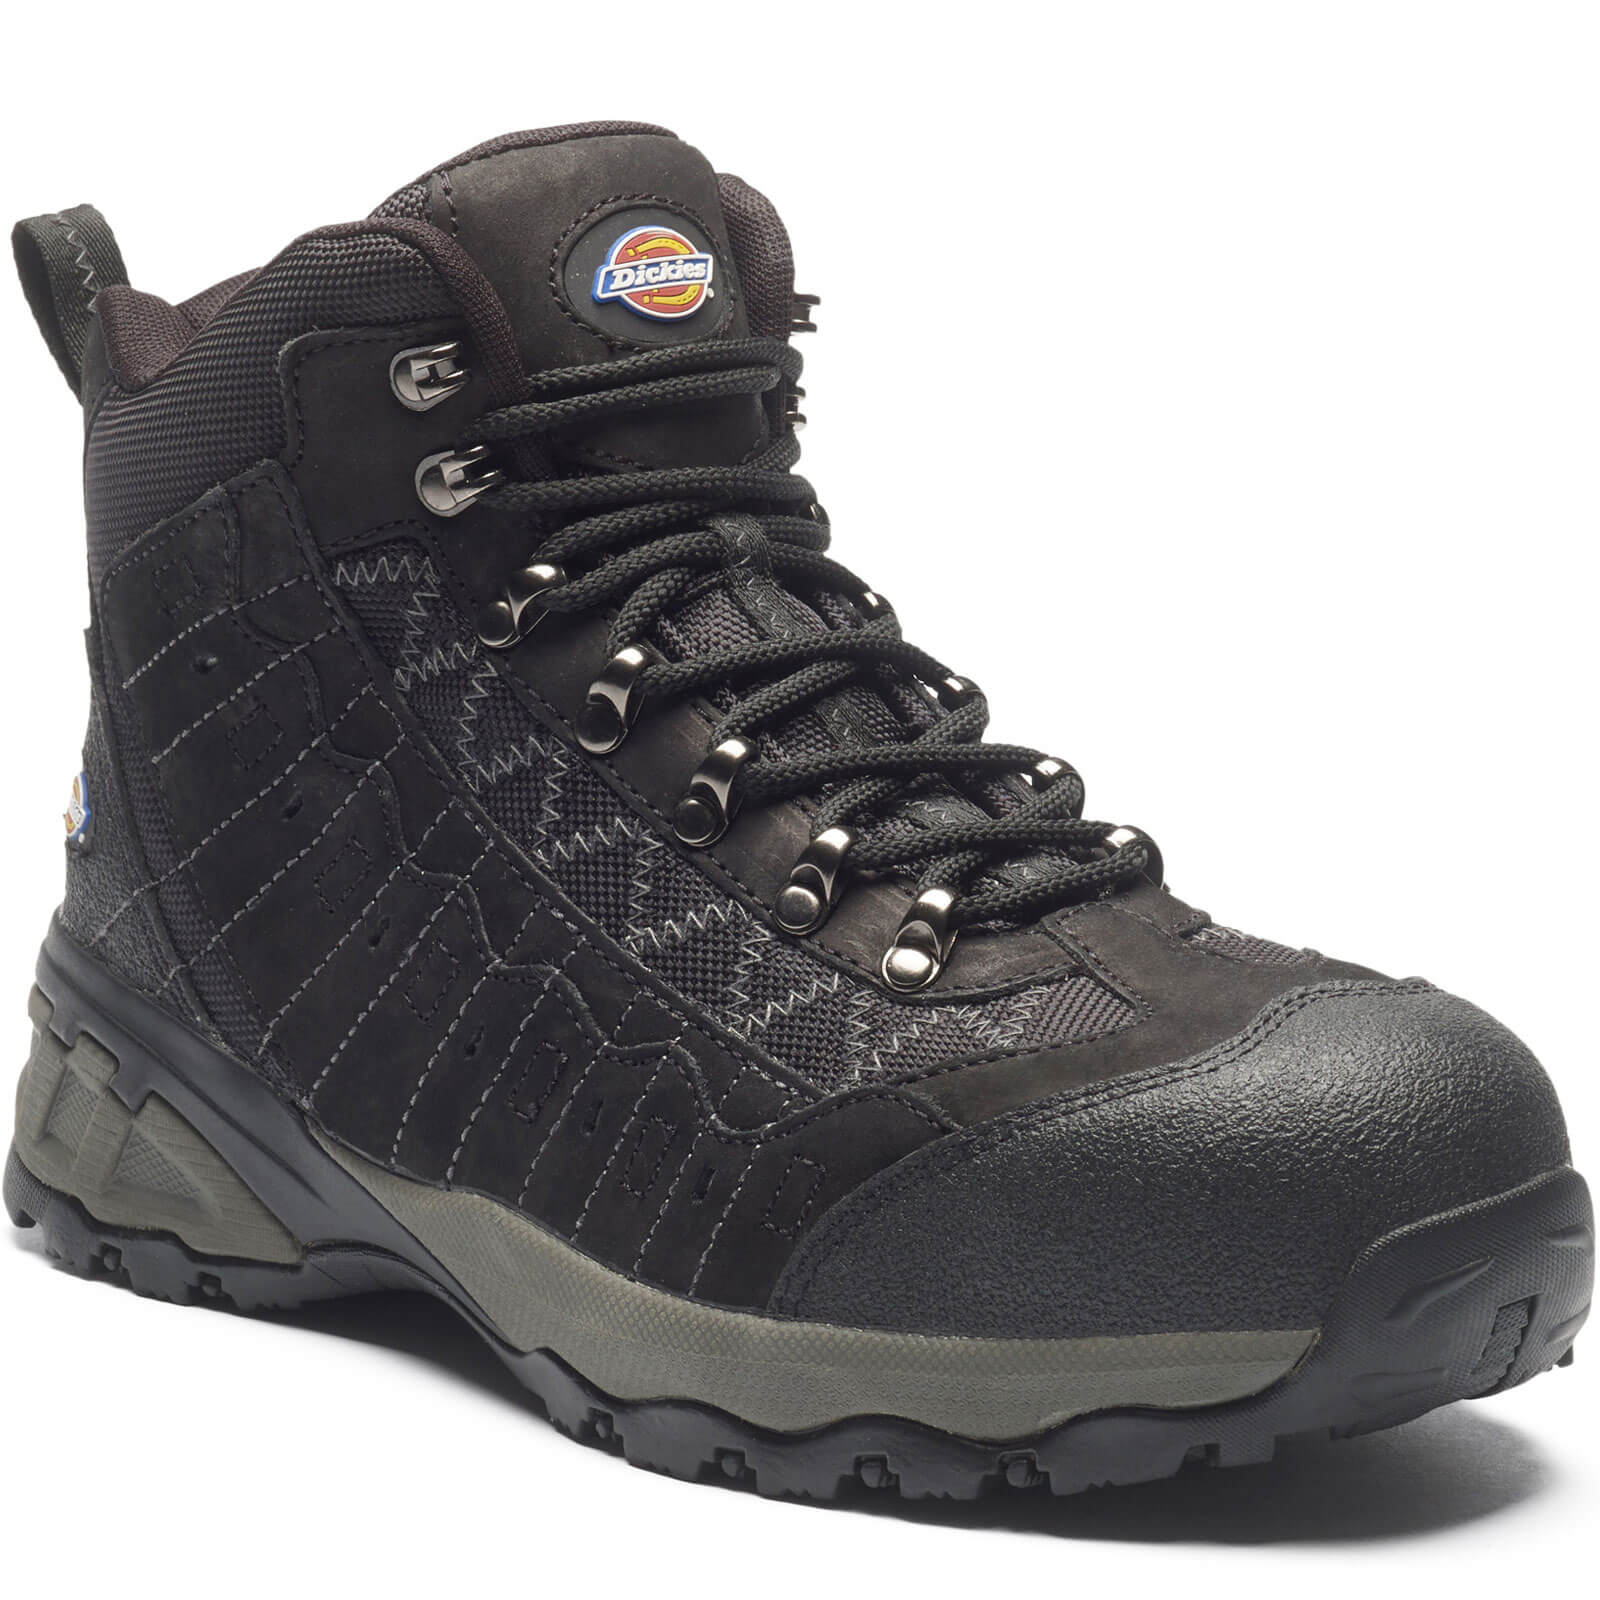 Dickies Mens Gironde Safety Boots Black